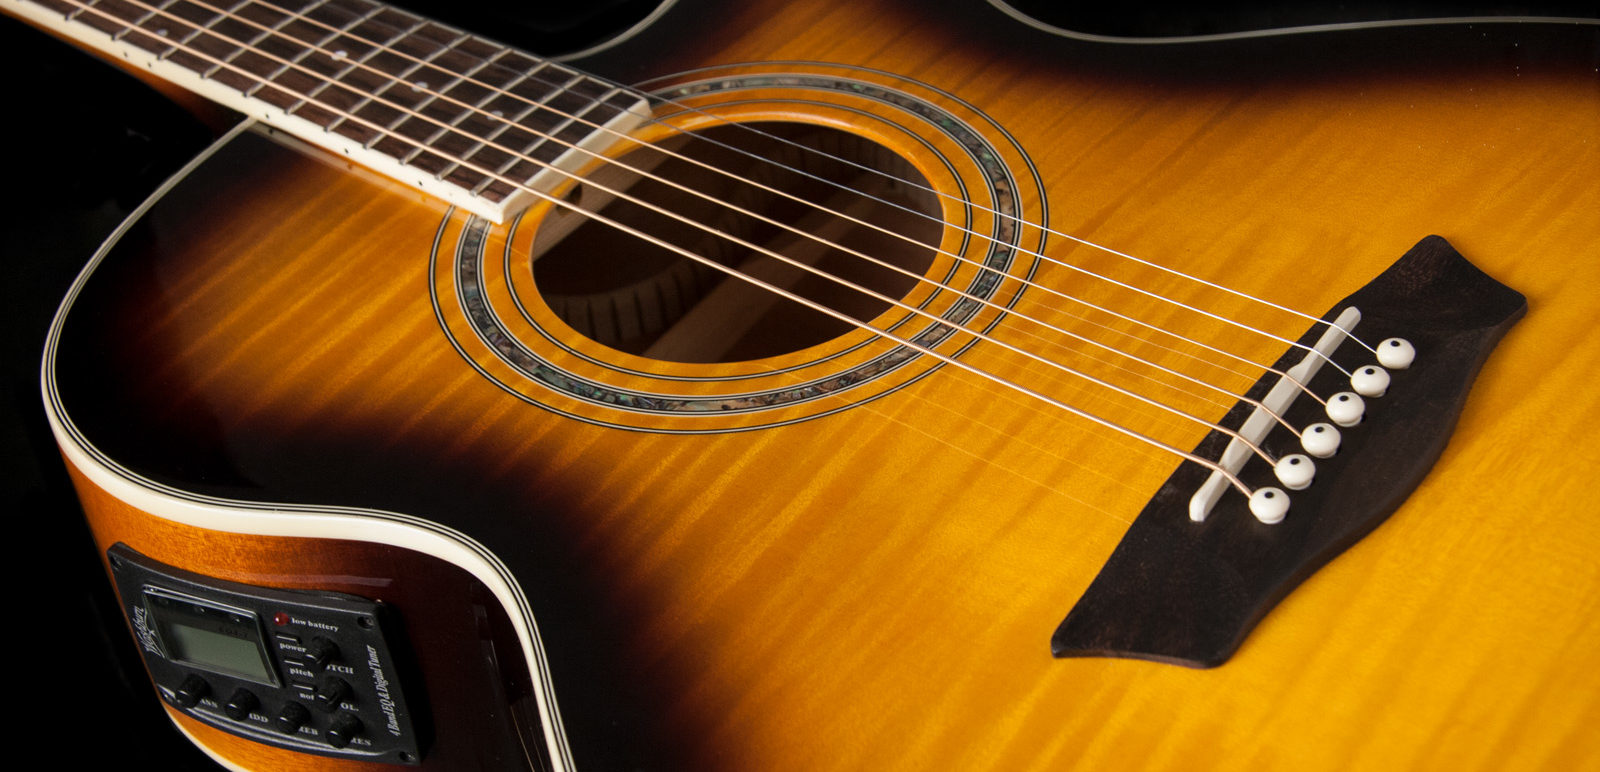 EA15ATB FESTIVAL ACOUSTIC GUITAR angled view of the top and controls